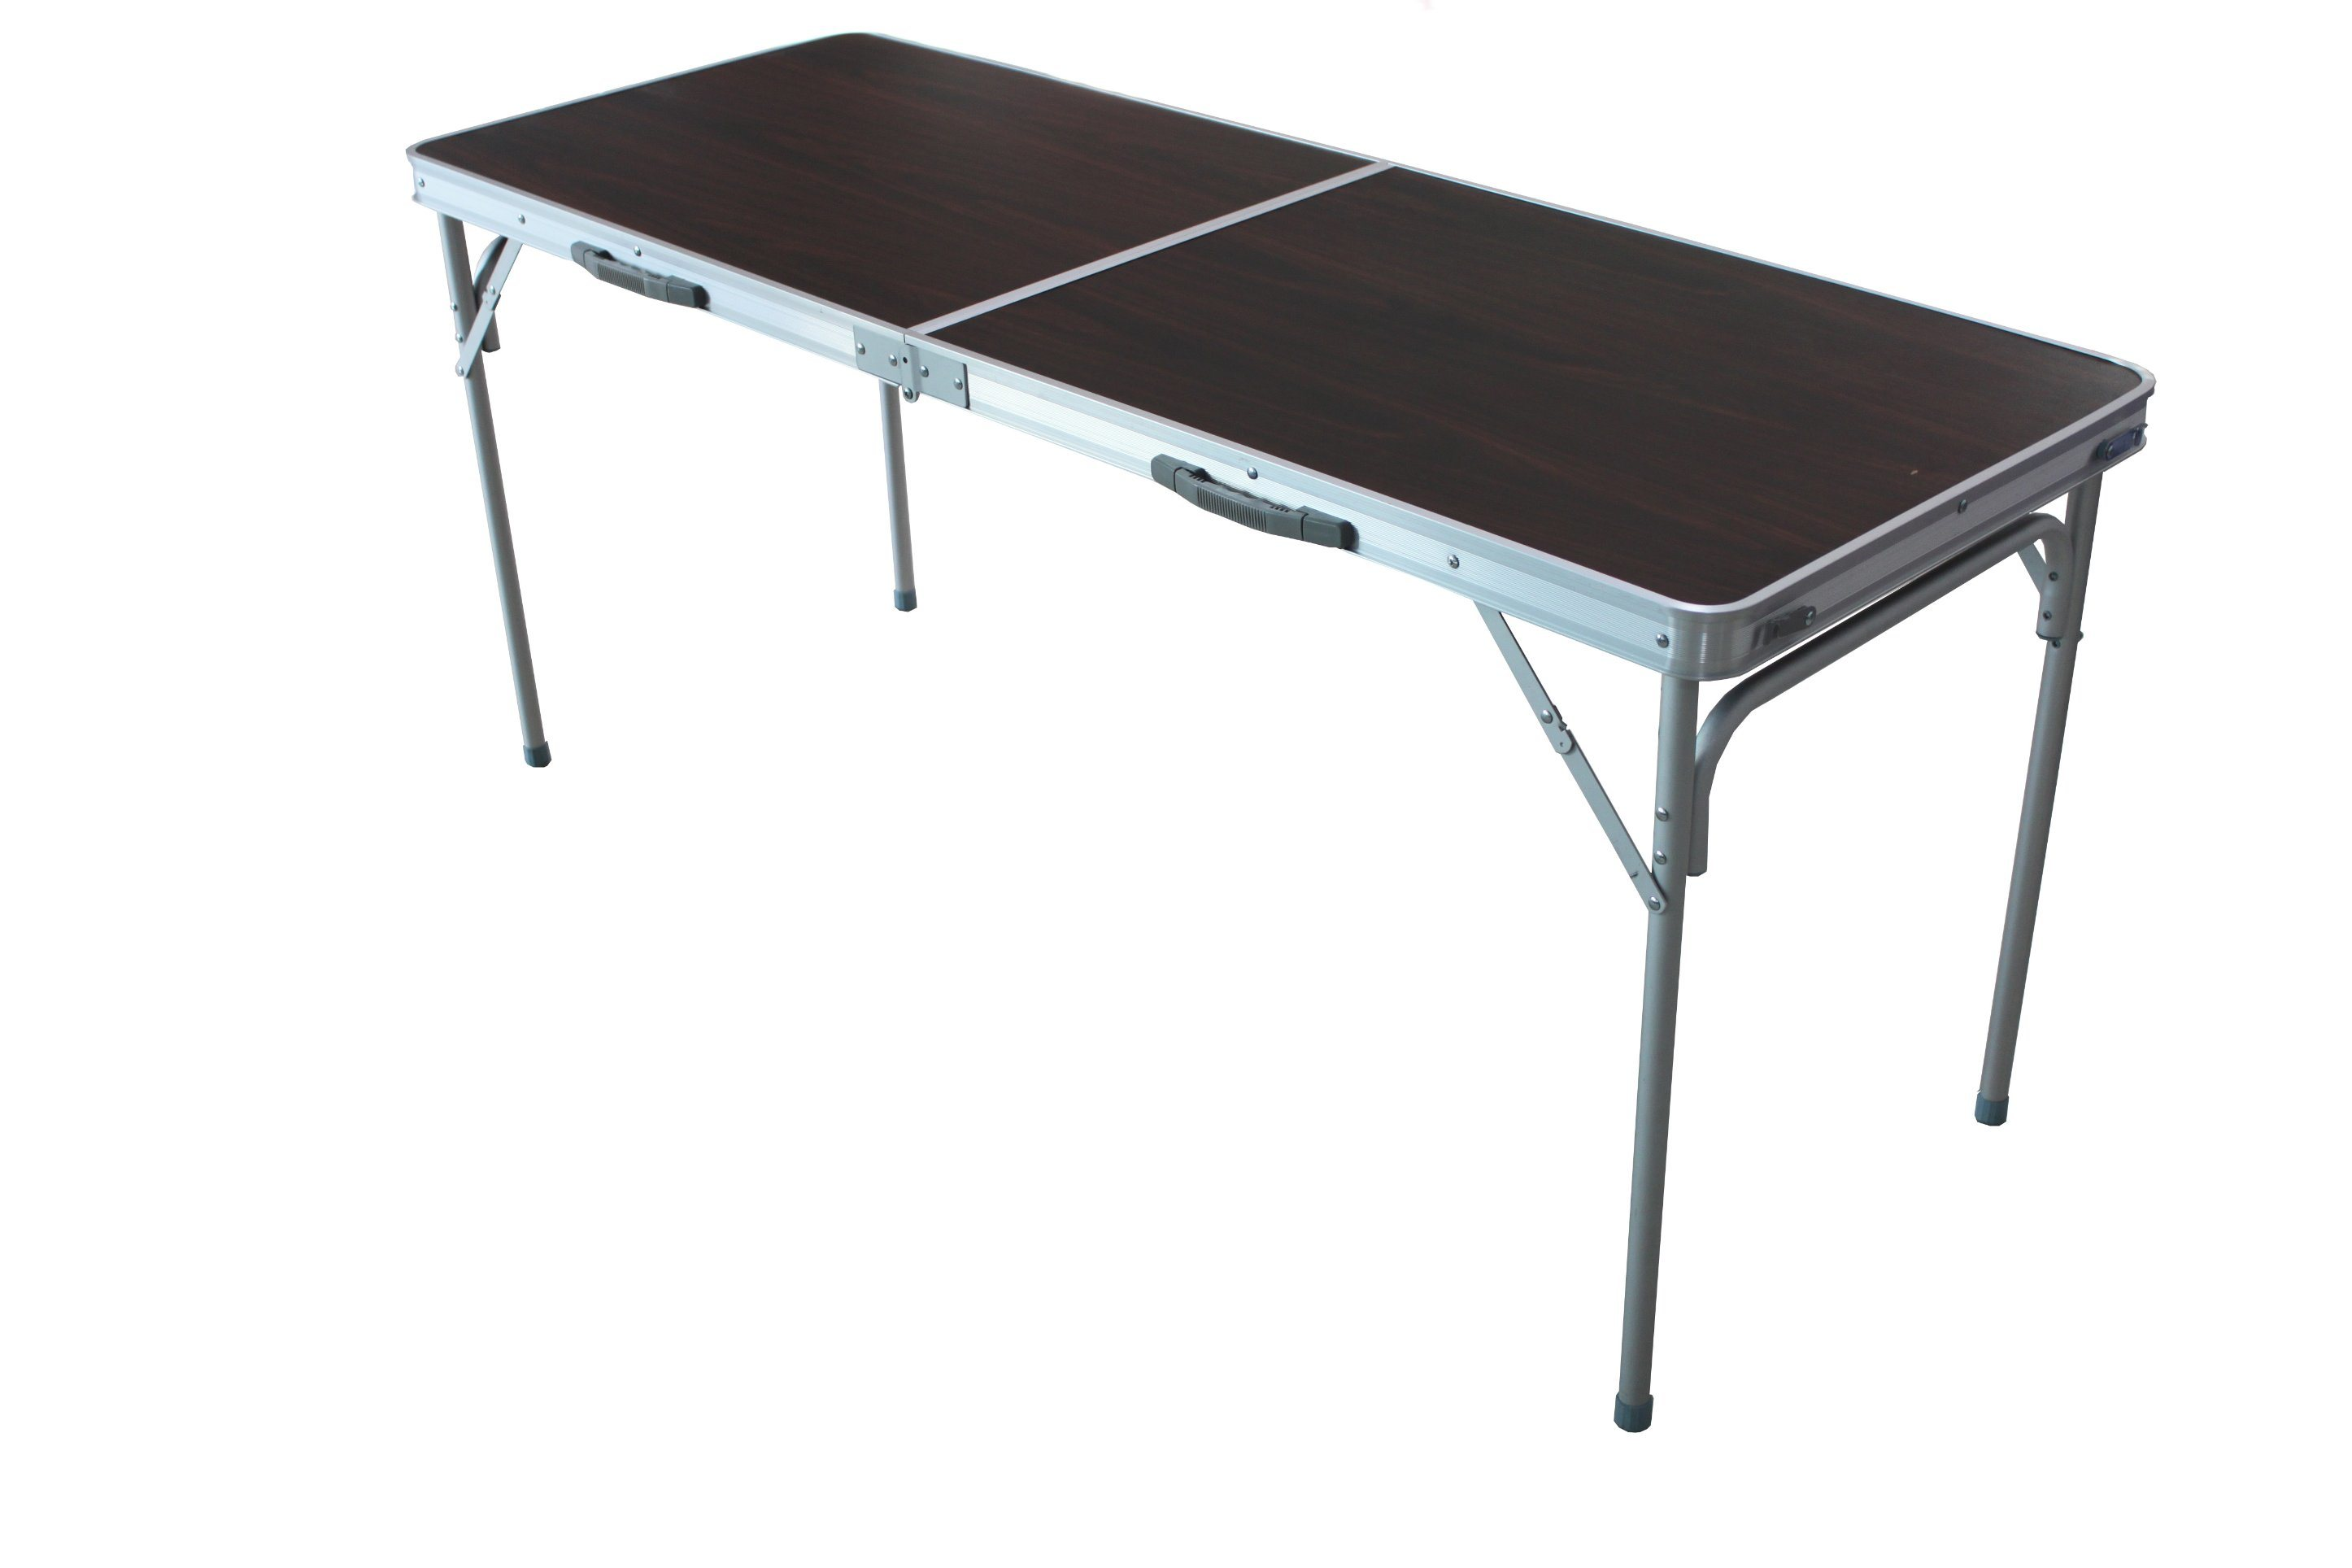 Aluminum Alloy Folding Table for Picnic/Camping